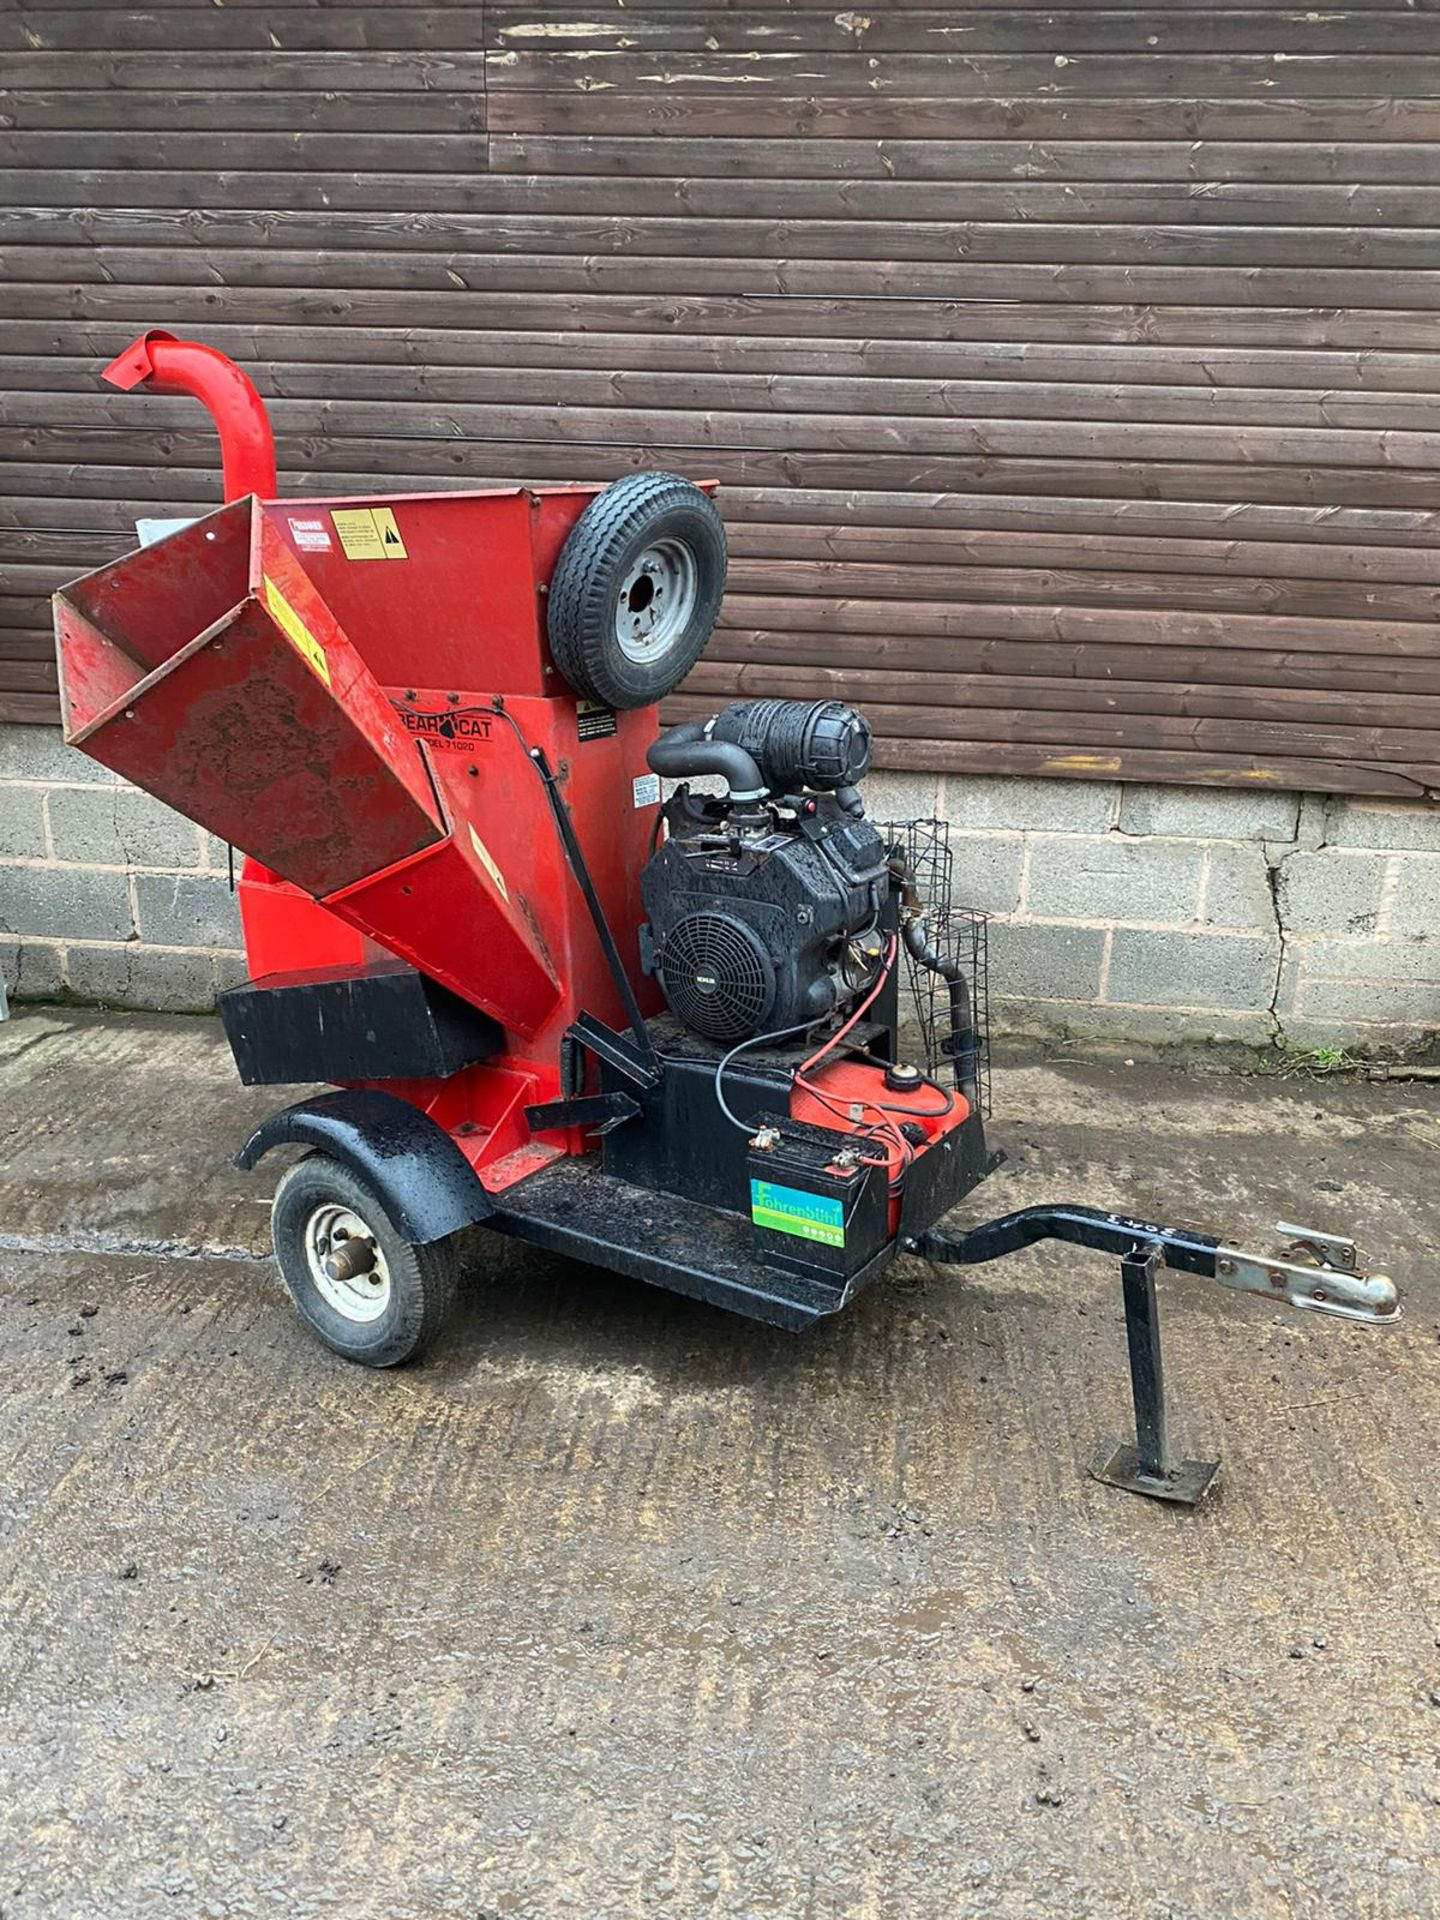 BEARCAT 71020 TOWABLE WOOD CHIPPER, KEY START 27HP PETROL ENGINE, ROAD TOWABLE *PLUS VAT* - Image 3 of 6